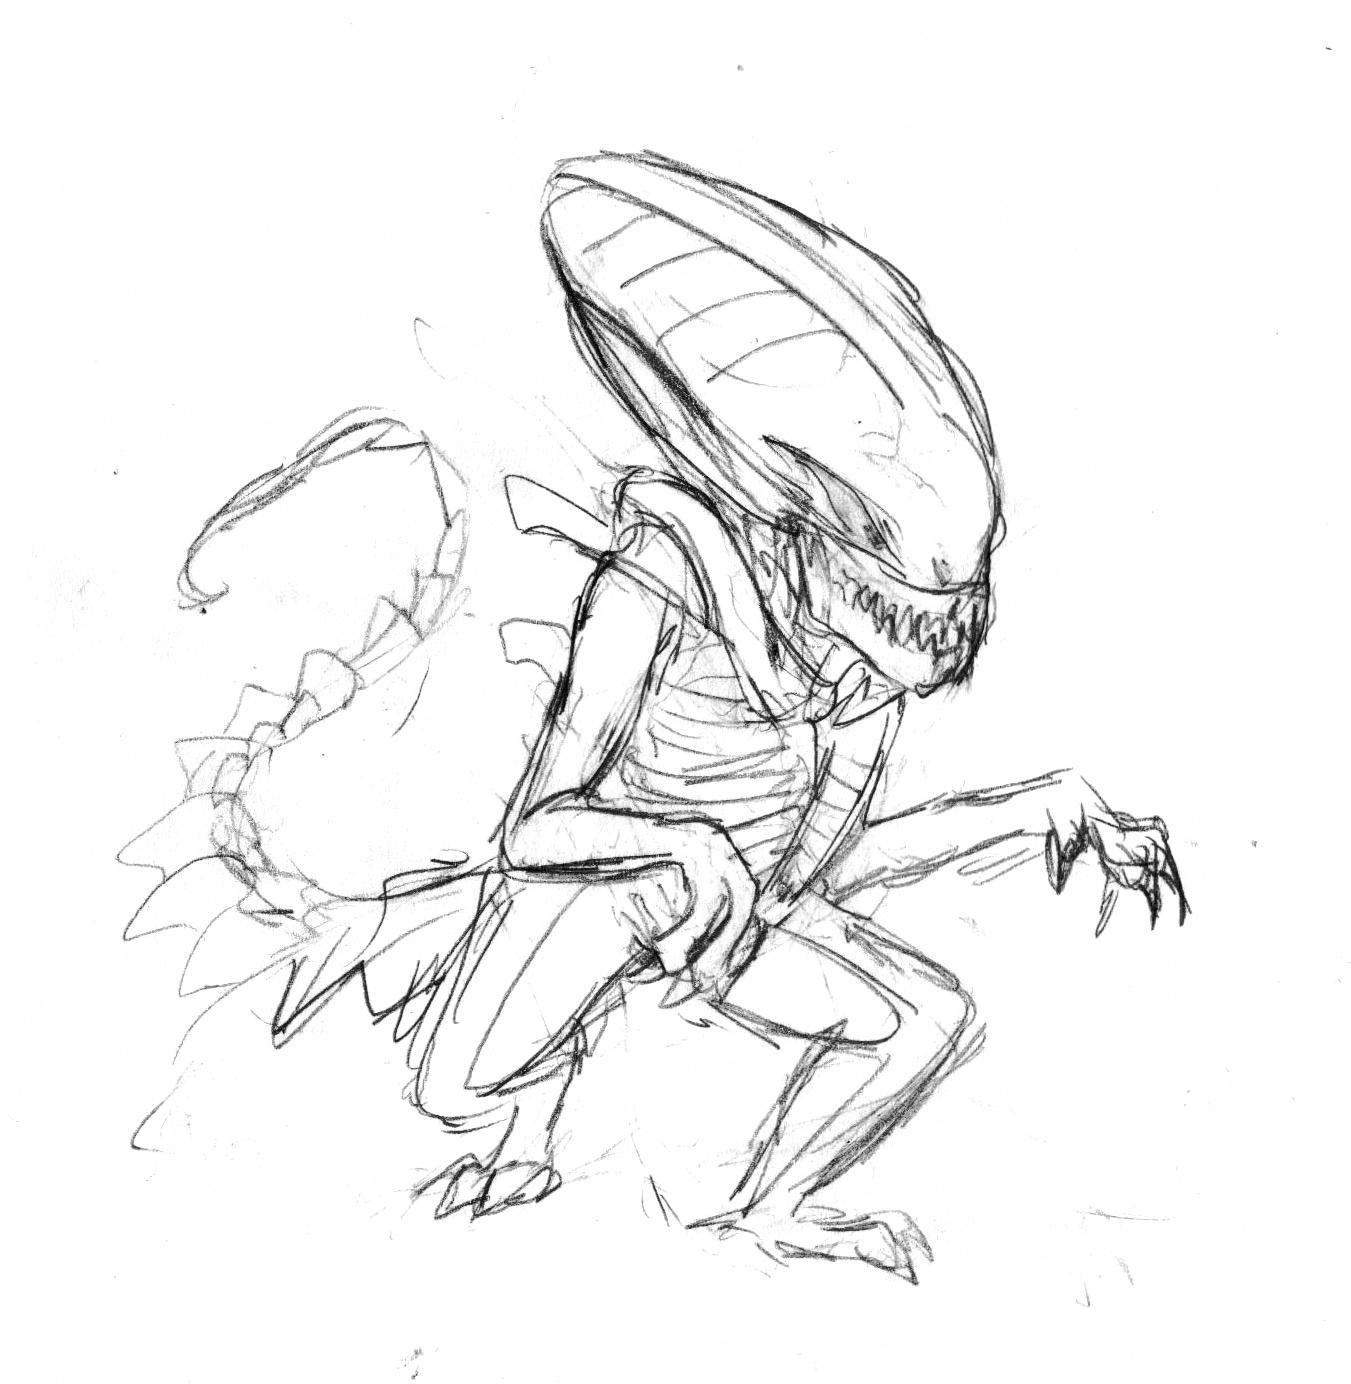 The very first digital drafts of the reddit alien